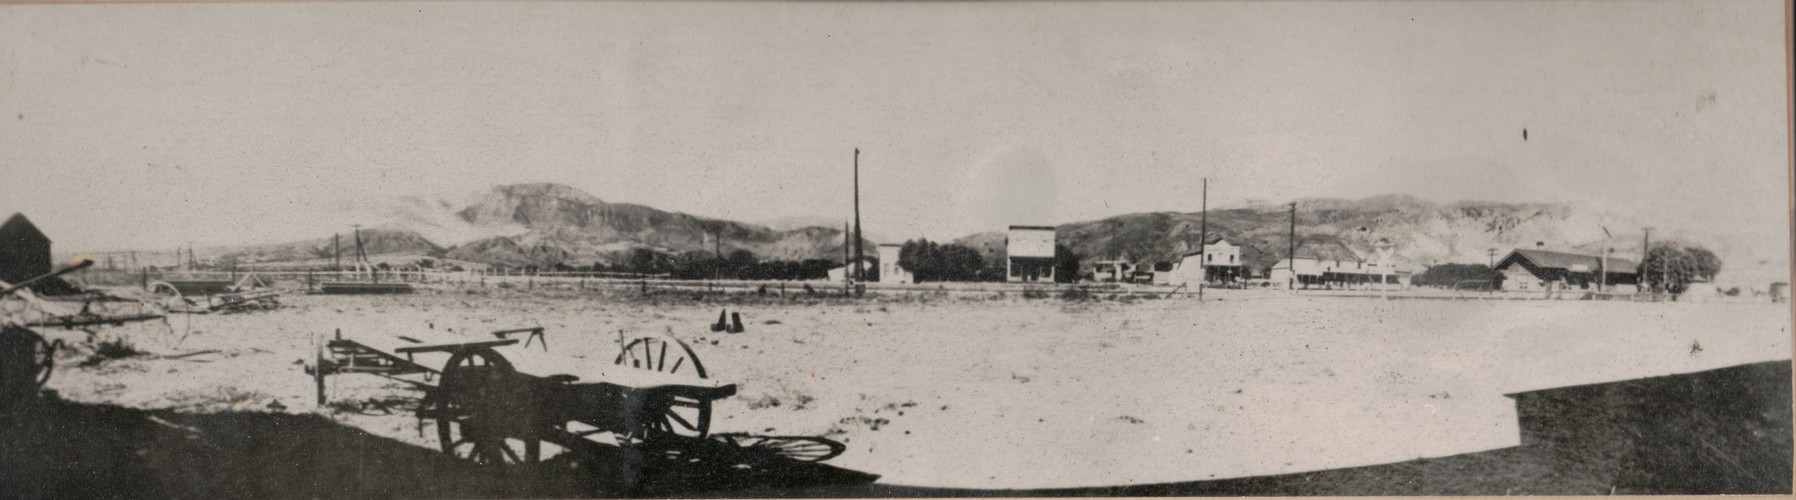 1890 Fire on San Cayetano Mountain, Fillmore in foreground